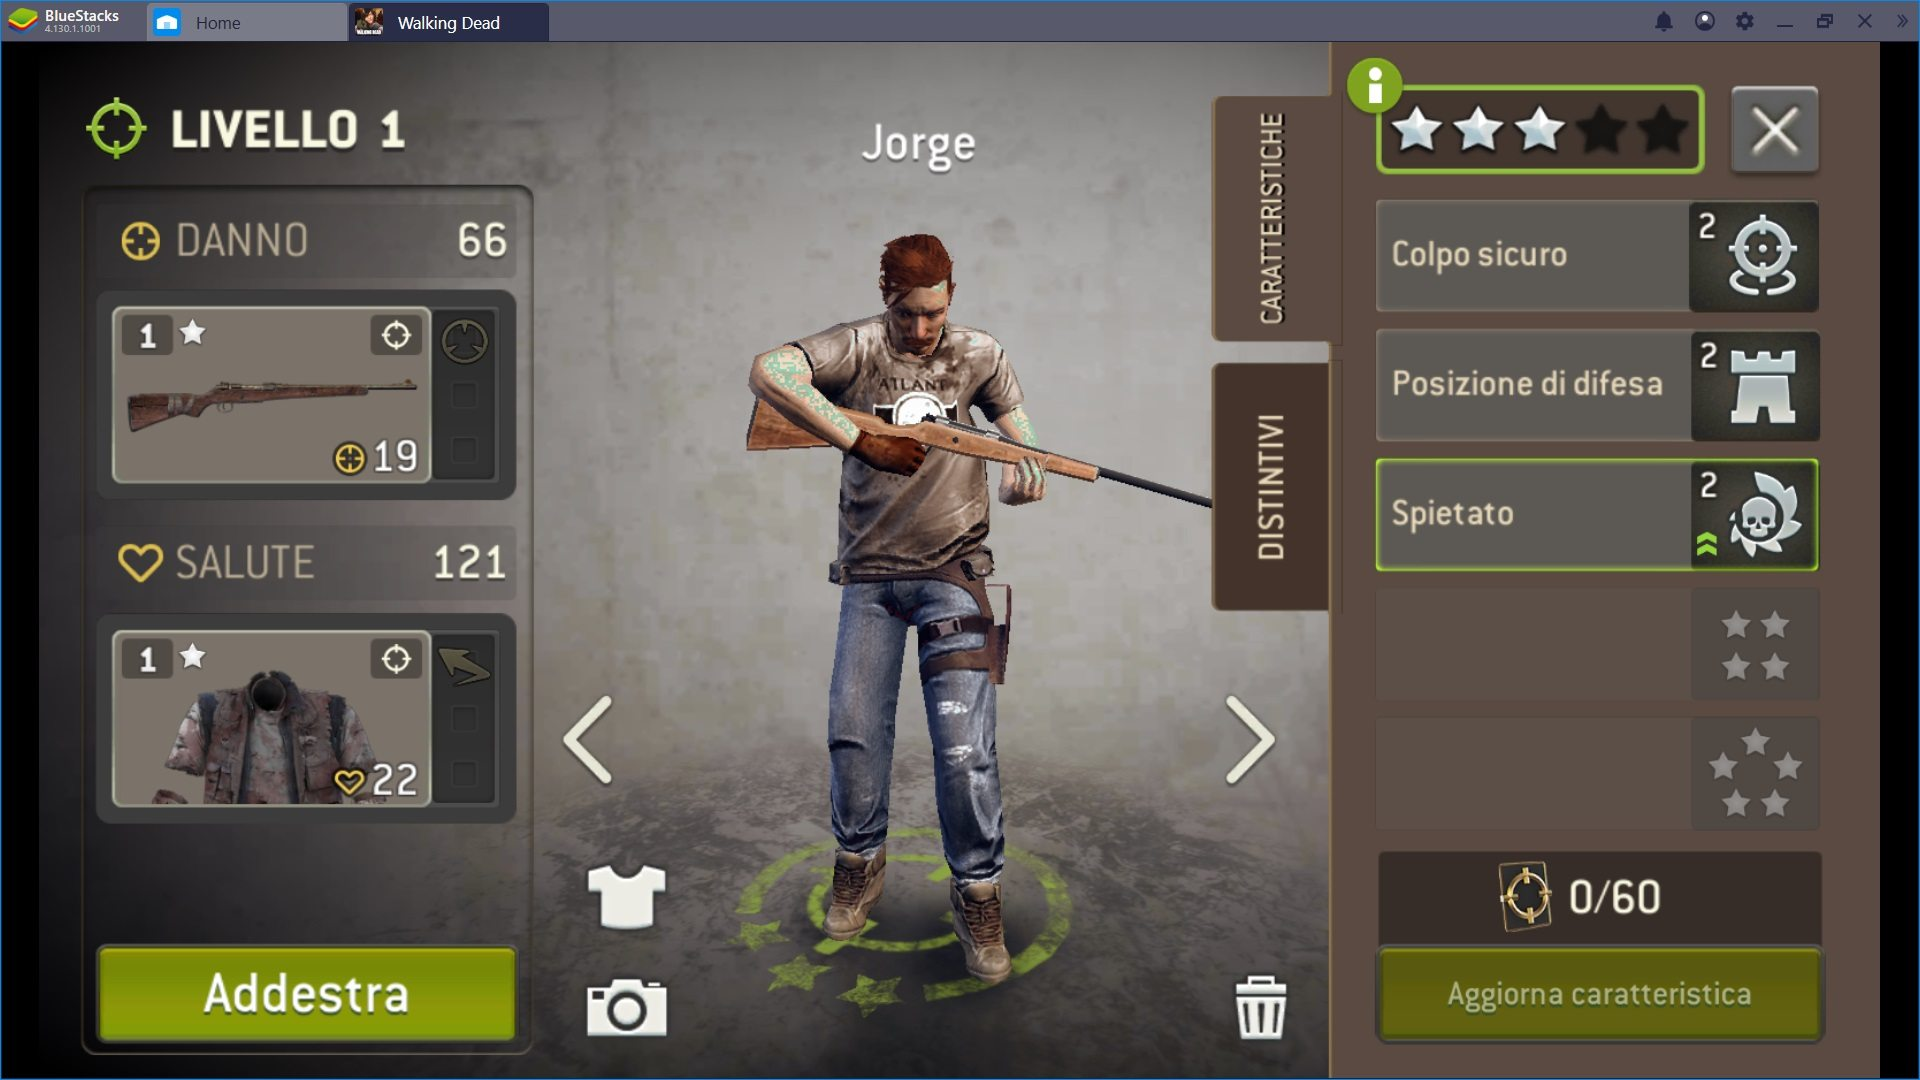 La Guida per i Nuovi Giocatori di The Walking Dead: No Man's Land